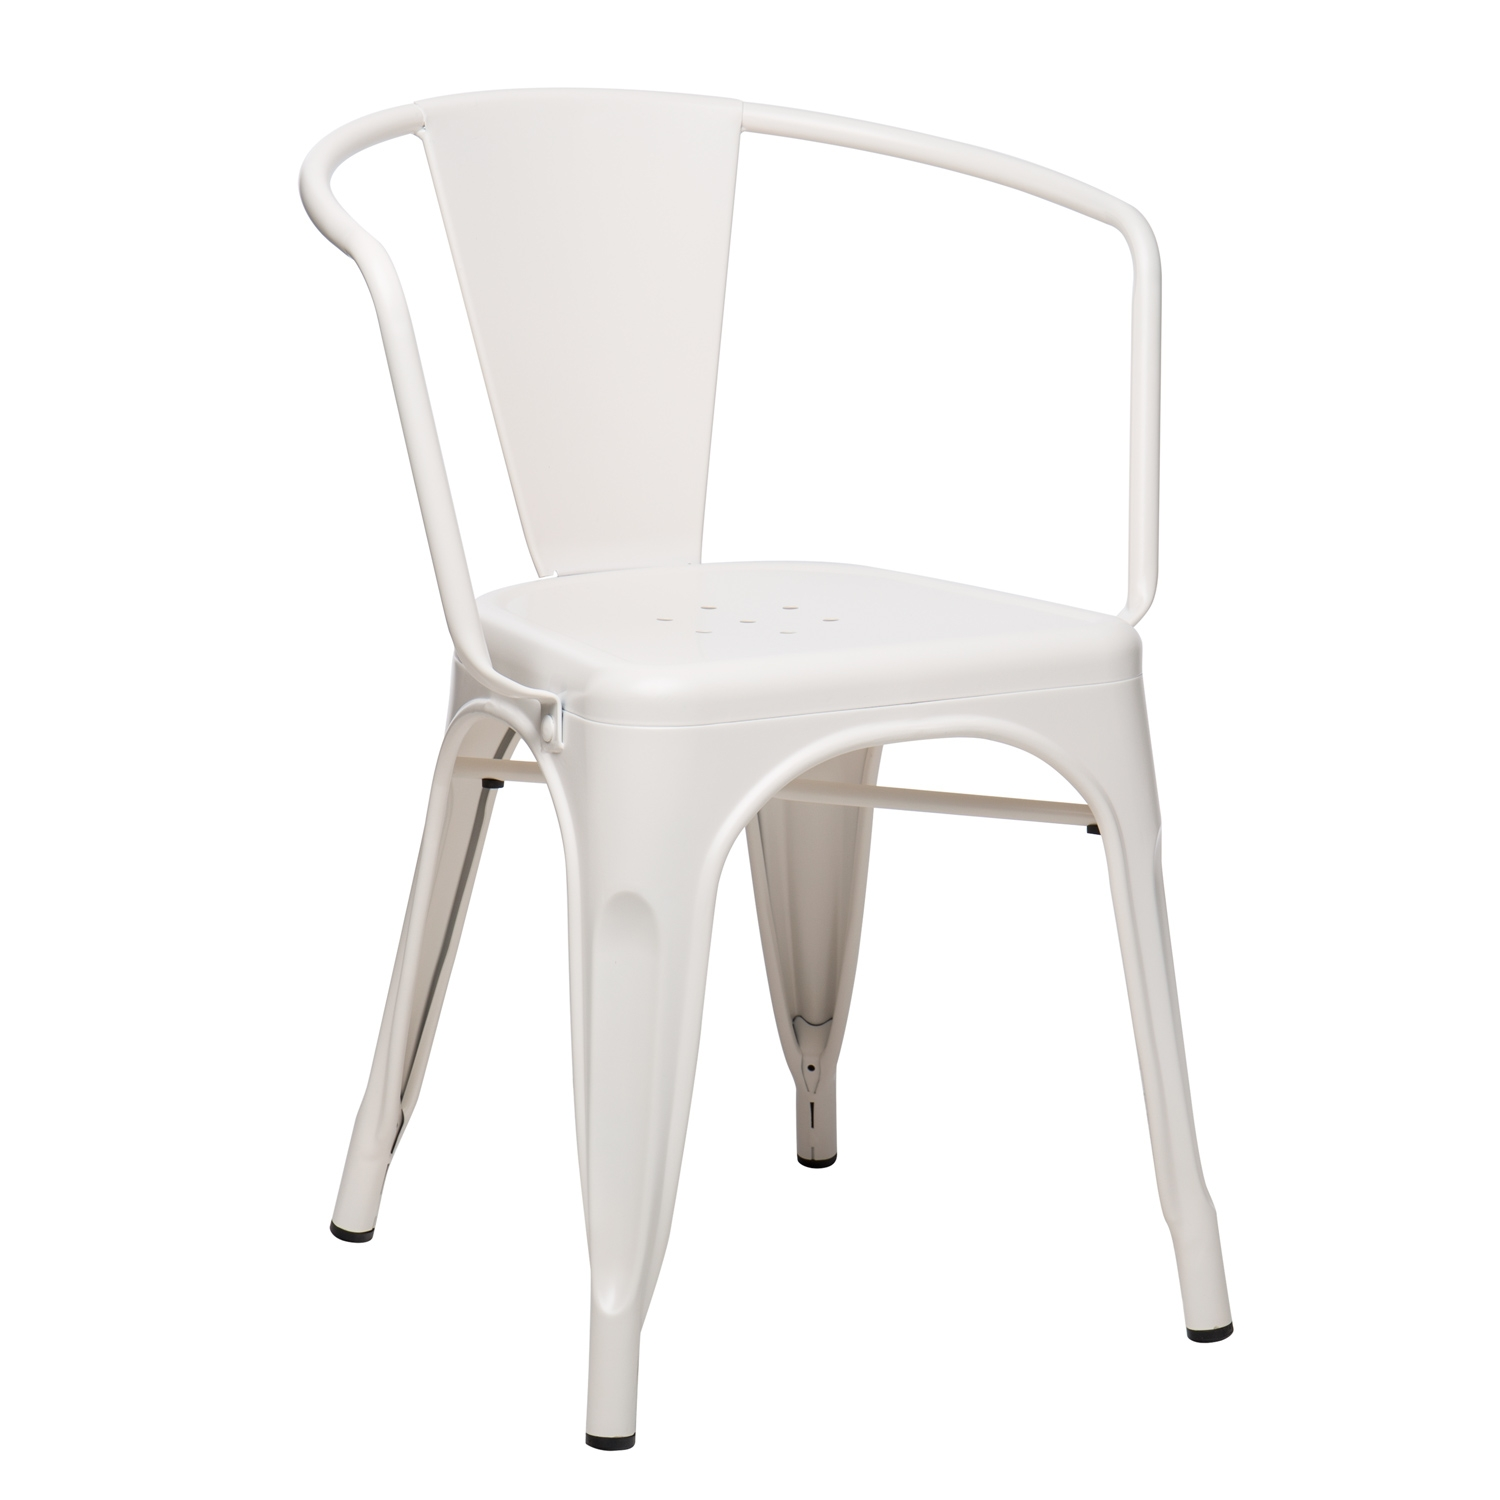 Matte LIX Chair with Armrests, gallery image 1